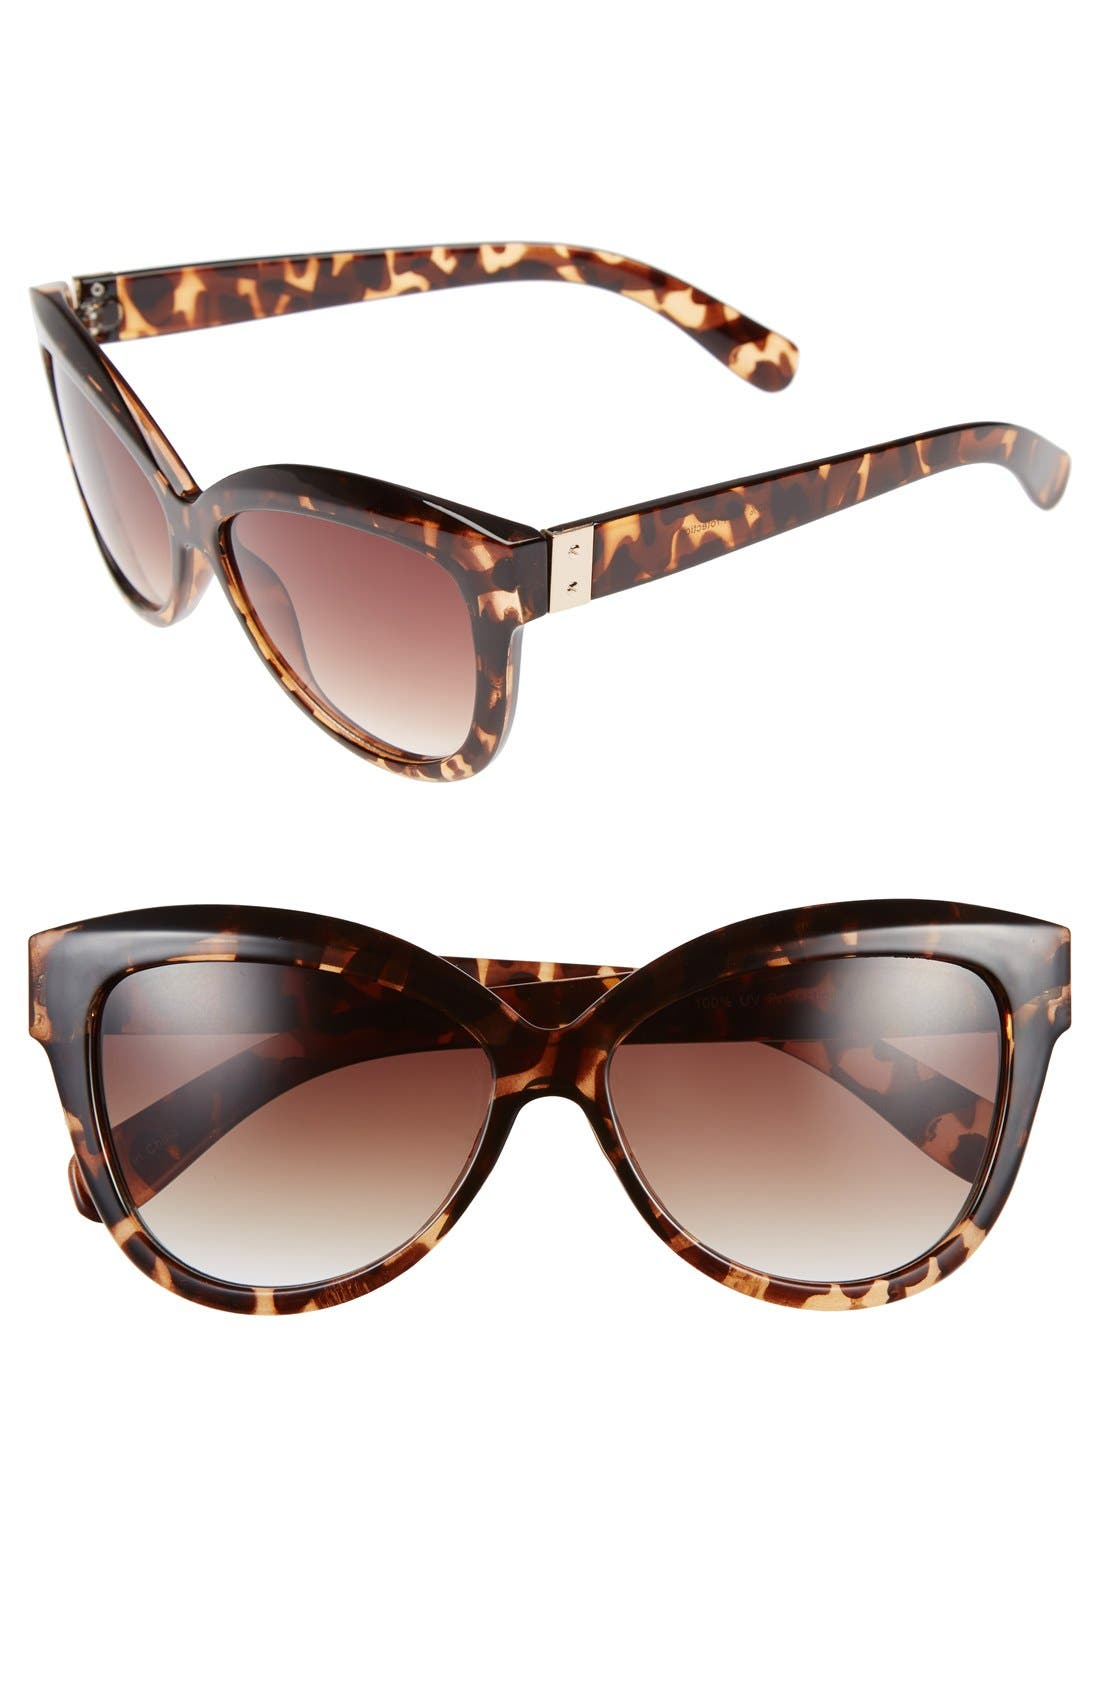 60mm Round Sunglasses,                         Main,                         color, Tortoise